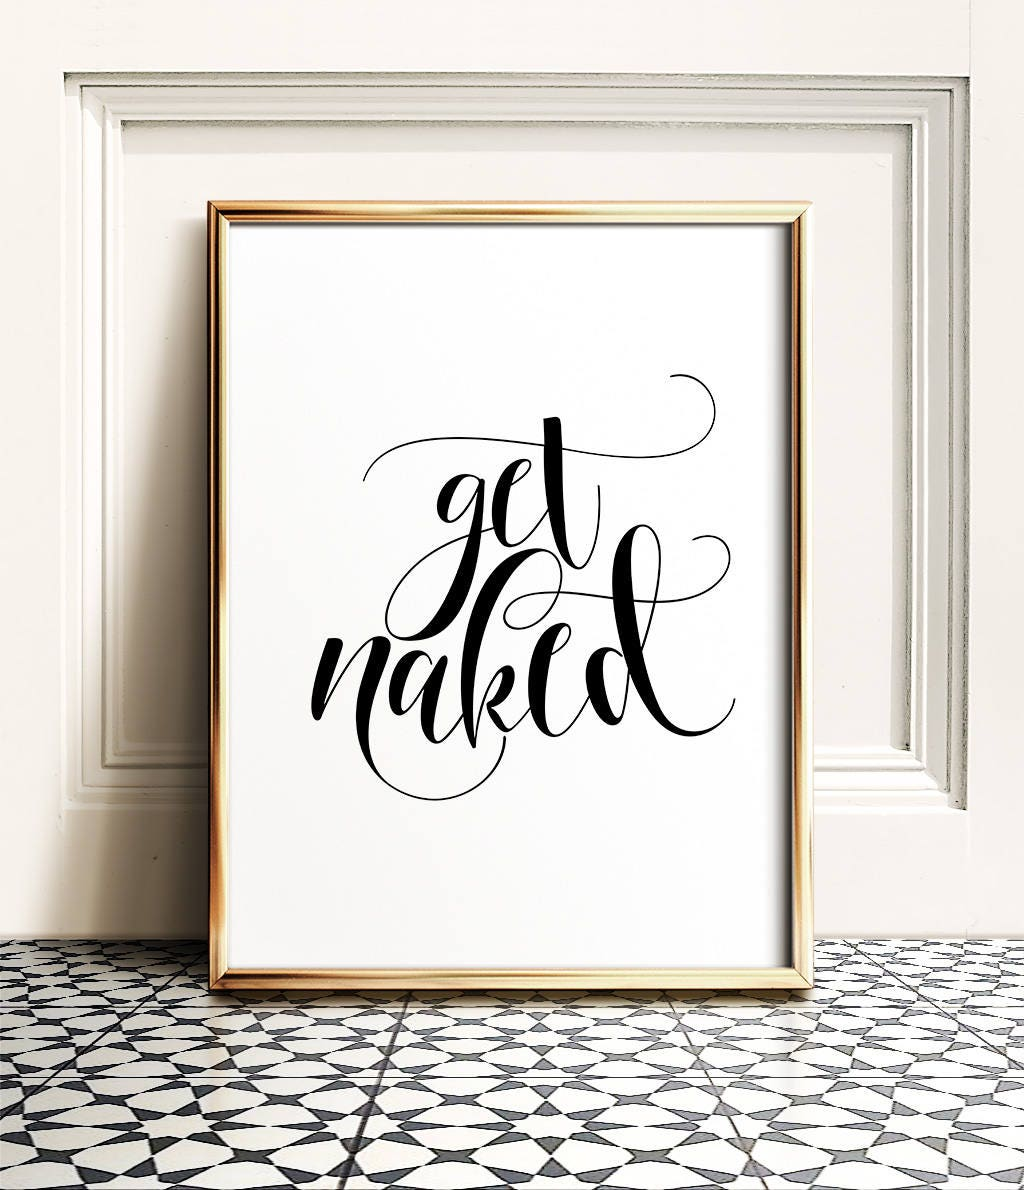 Free Printable Bathroom Pictures: Get Naked Sign PRINTABLE Art Bathroom Prints Get Naked